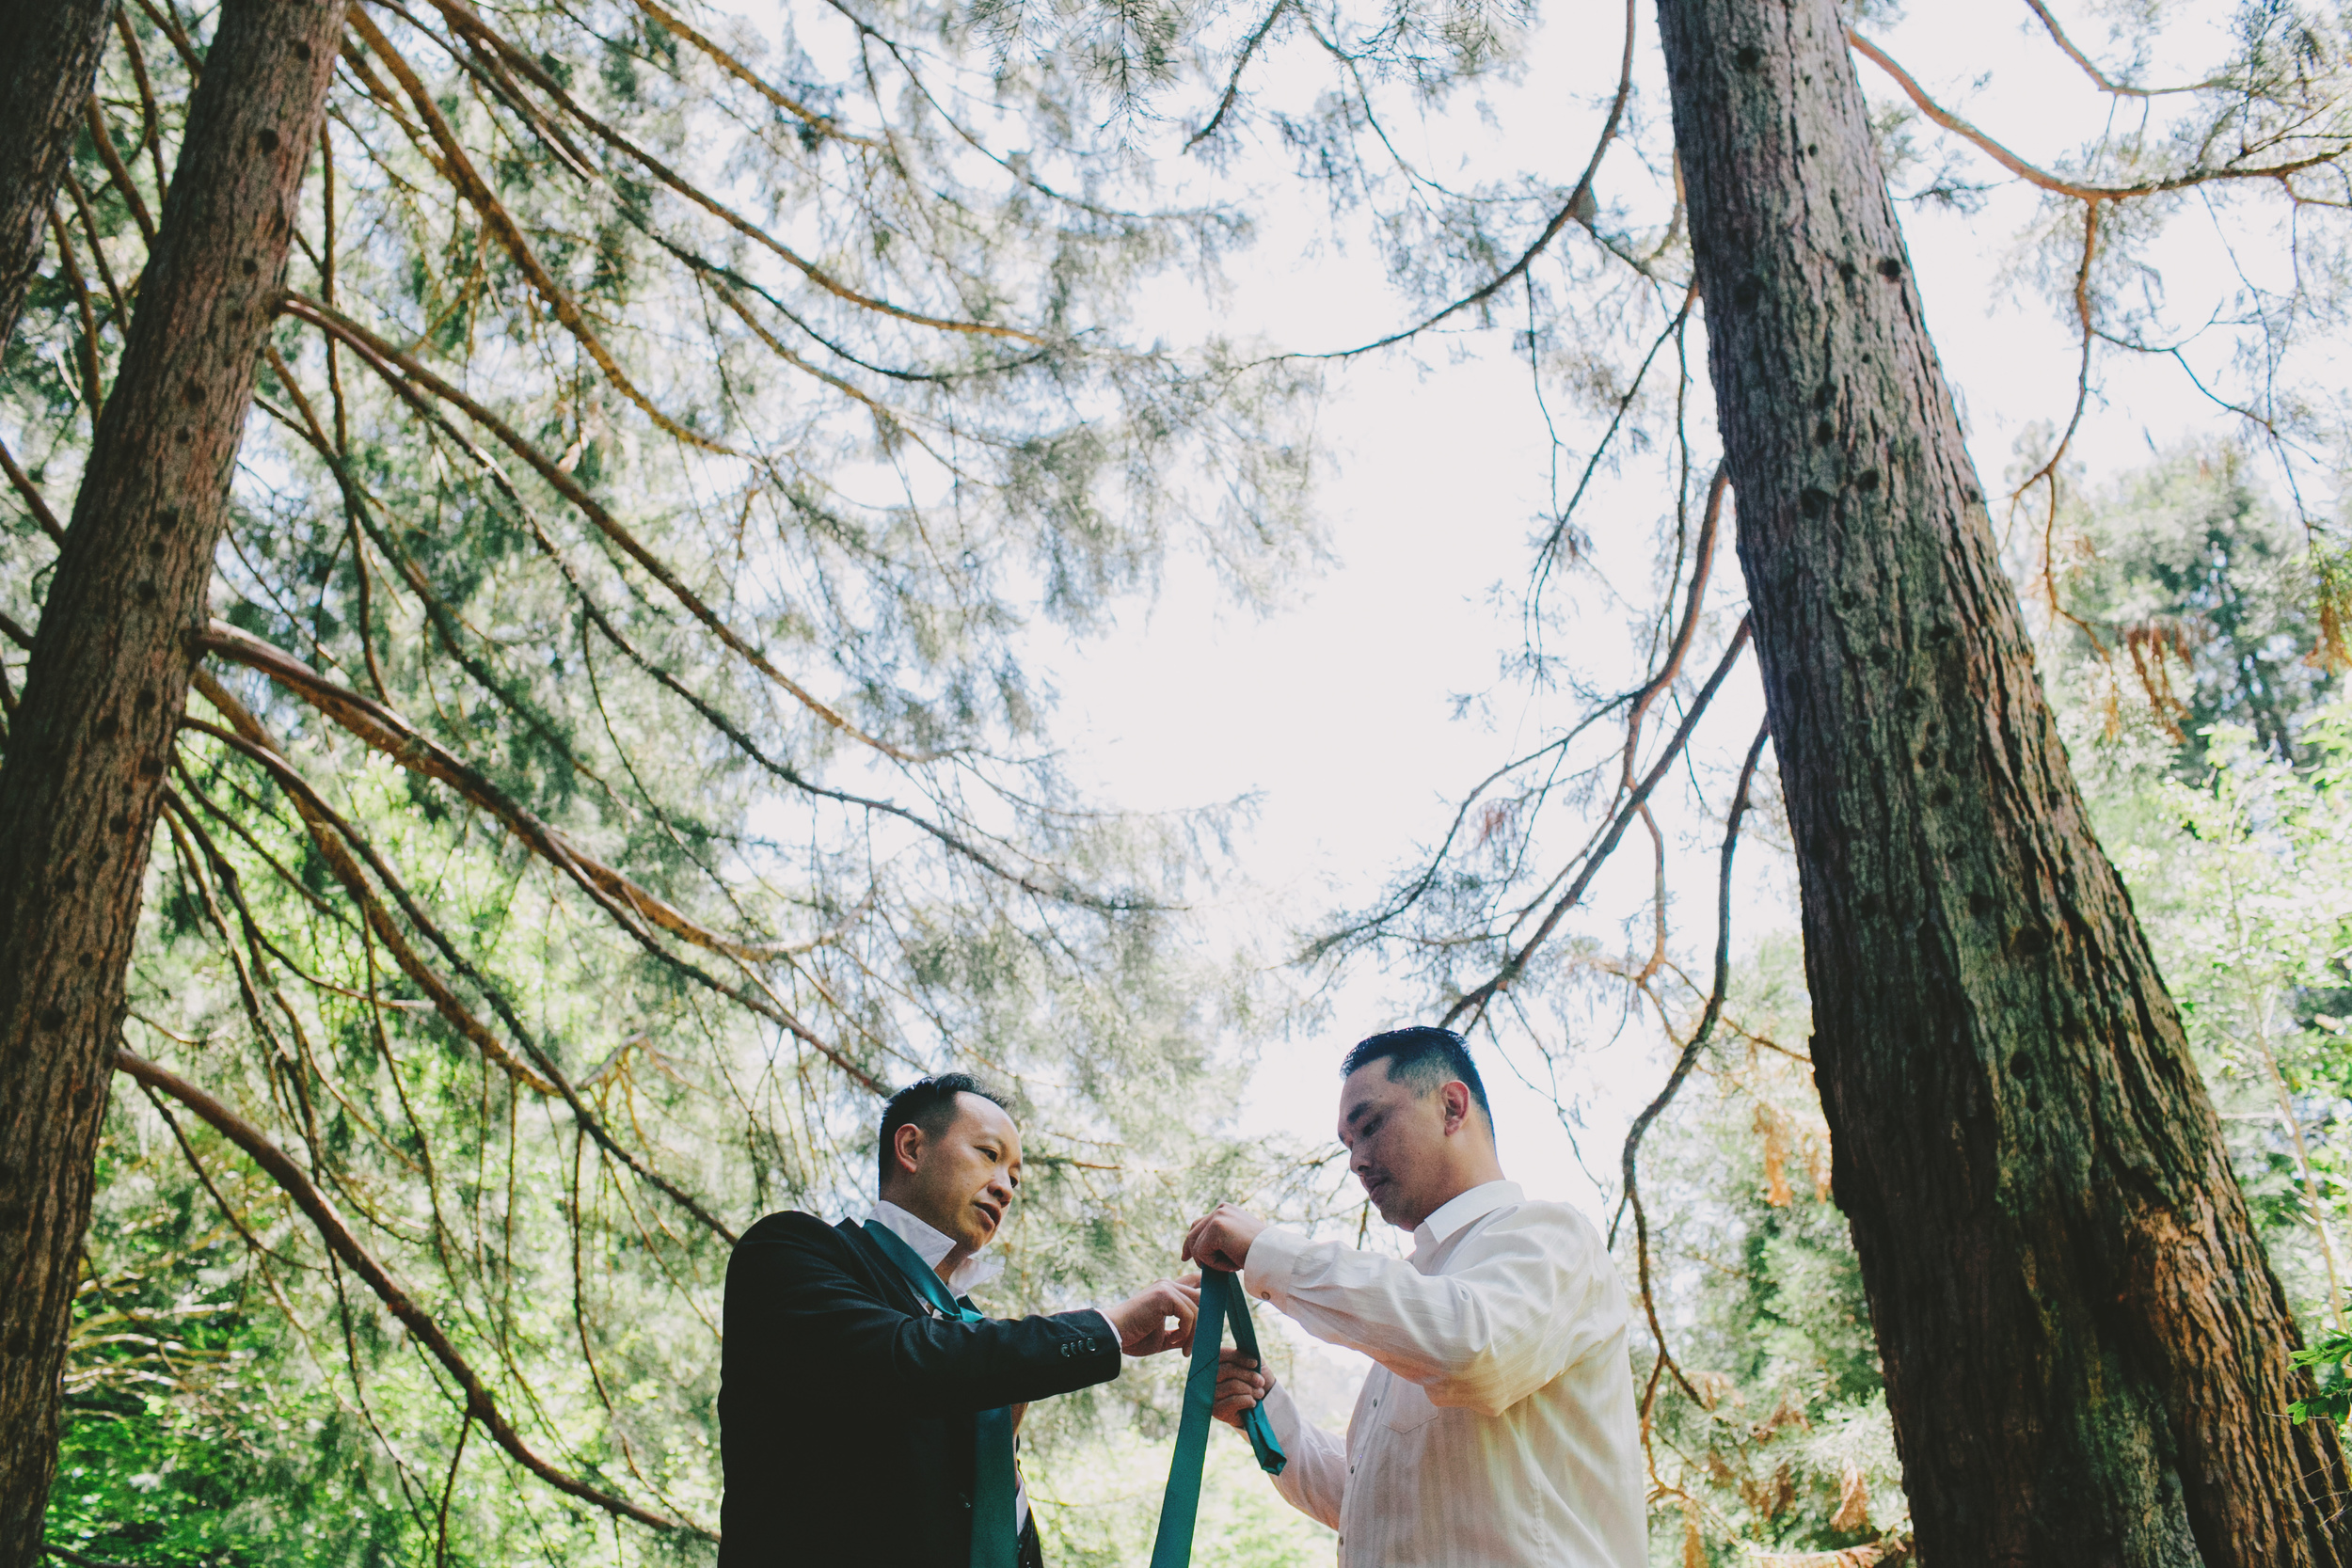 Tilden_Wedding_Berkeley-02.JPG